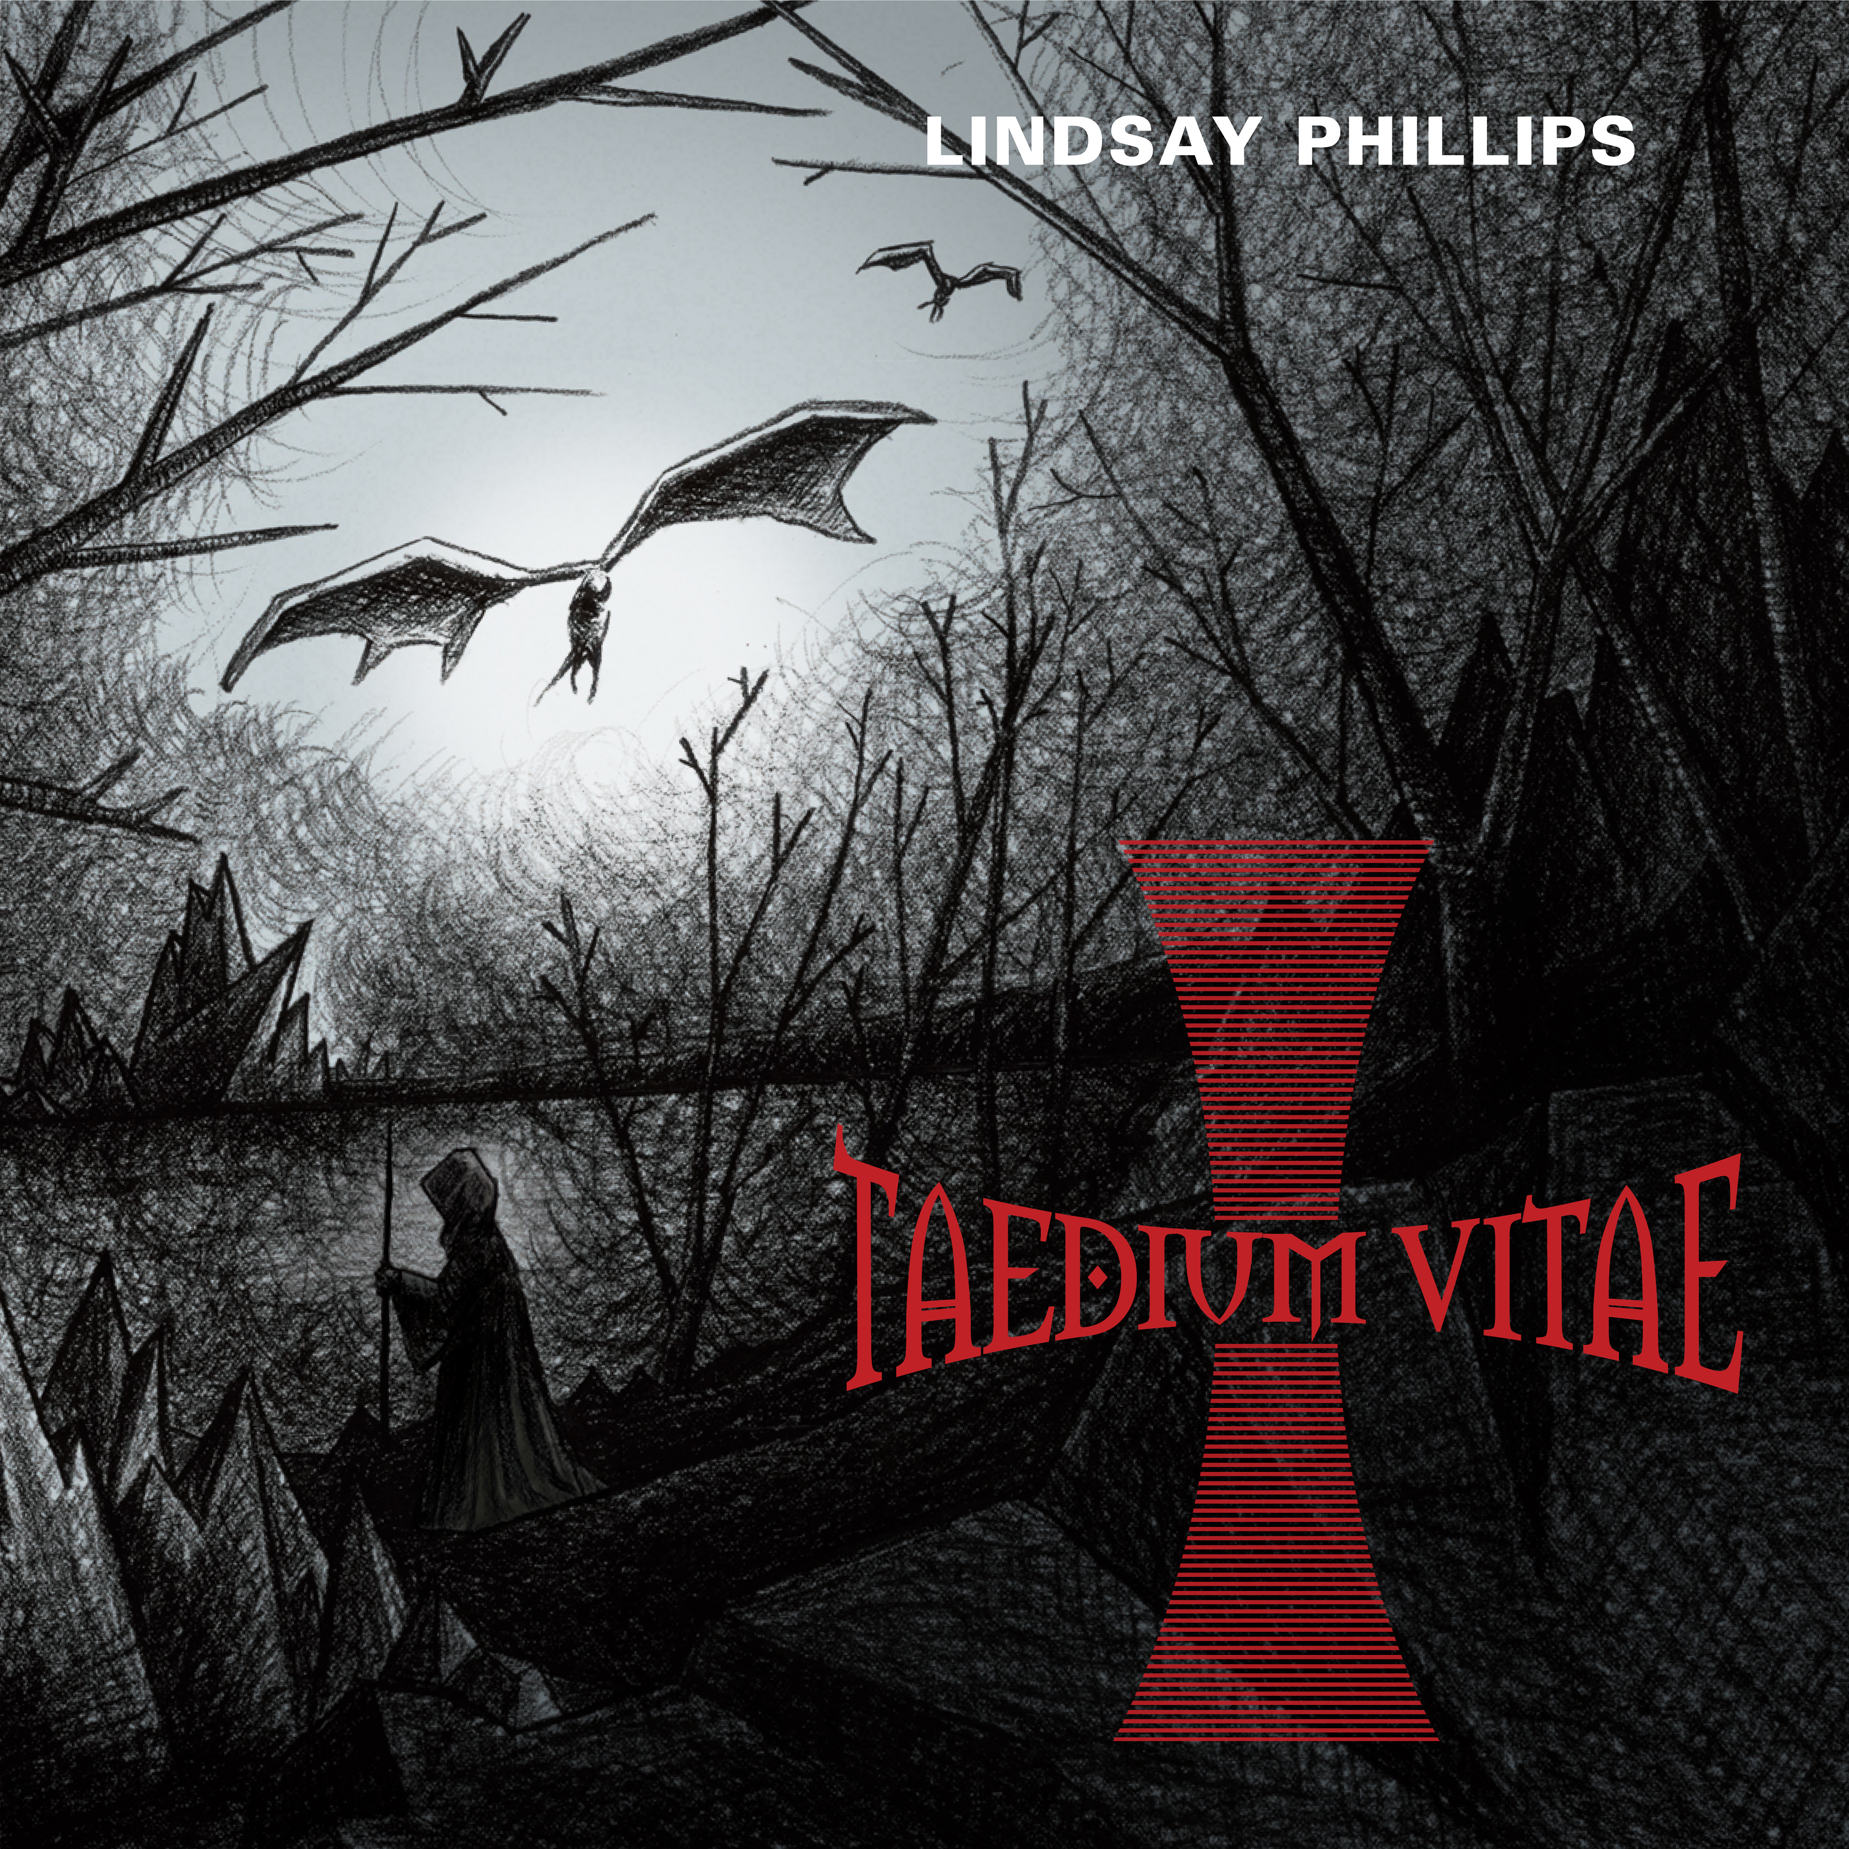 """""""Taedium Vitae  (Latin for """"the weariness of life"""") is Phillips' second album, following 2010's equally beguiling  Varning . Don't be fooled by the metal cover art; this is sparse, acoustic folk that's at turns rousing, bleak, beautiful and dour. When Phillips' warble wraps around the pedal steel on  Only You (And The Lord) , you know you're in the presence of a rare artist.""""  DARREN LEVIN, 4 stars, The Age   Read more:    Find  Lindsay Phillips   Available at  Bandcamp   produced by Myles Mumford  recorded at Atlantis Sound and Headgap  mixed by Myles Mumford  mastered by Simon Grounds  artwork/design by Cally Bennett  a Departed Sounds release"""